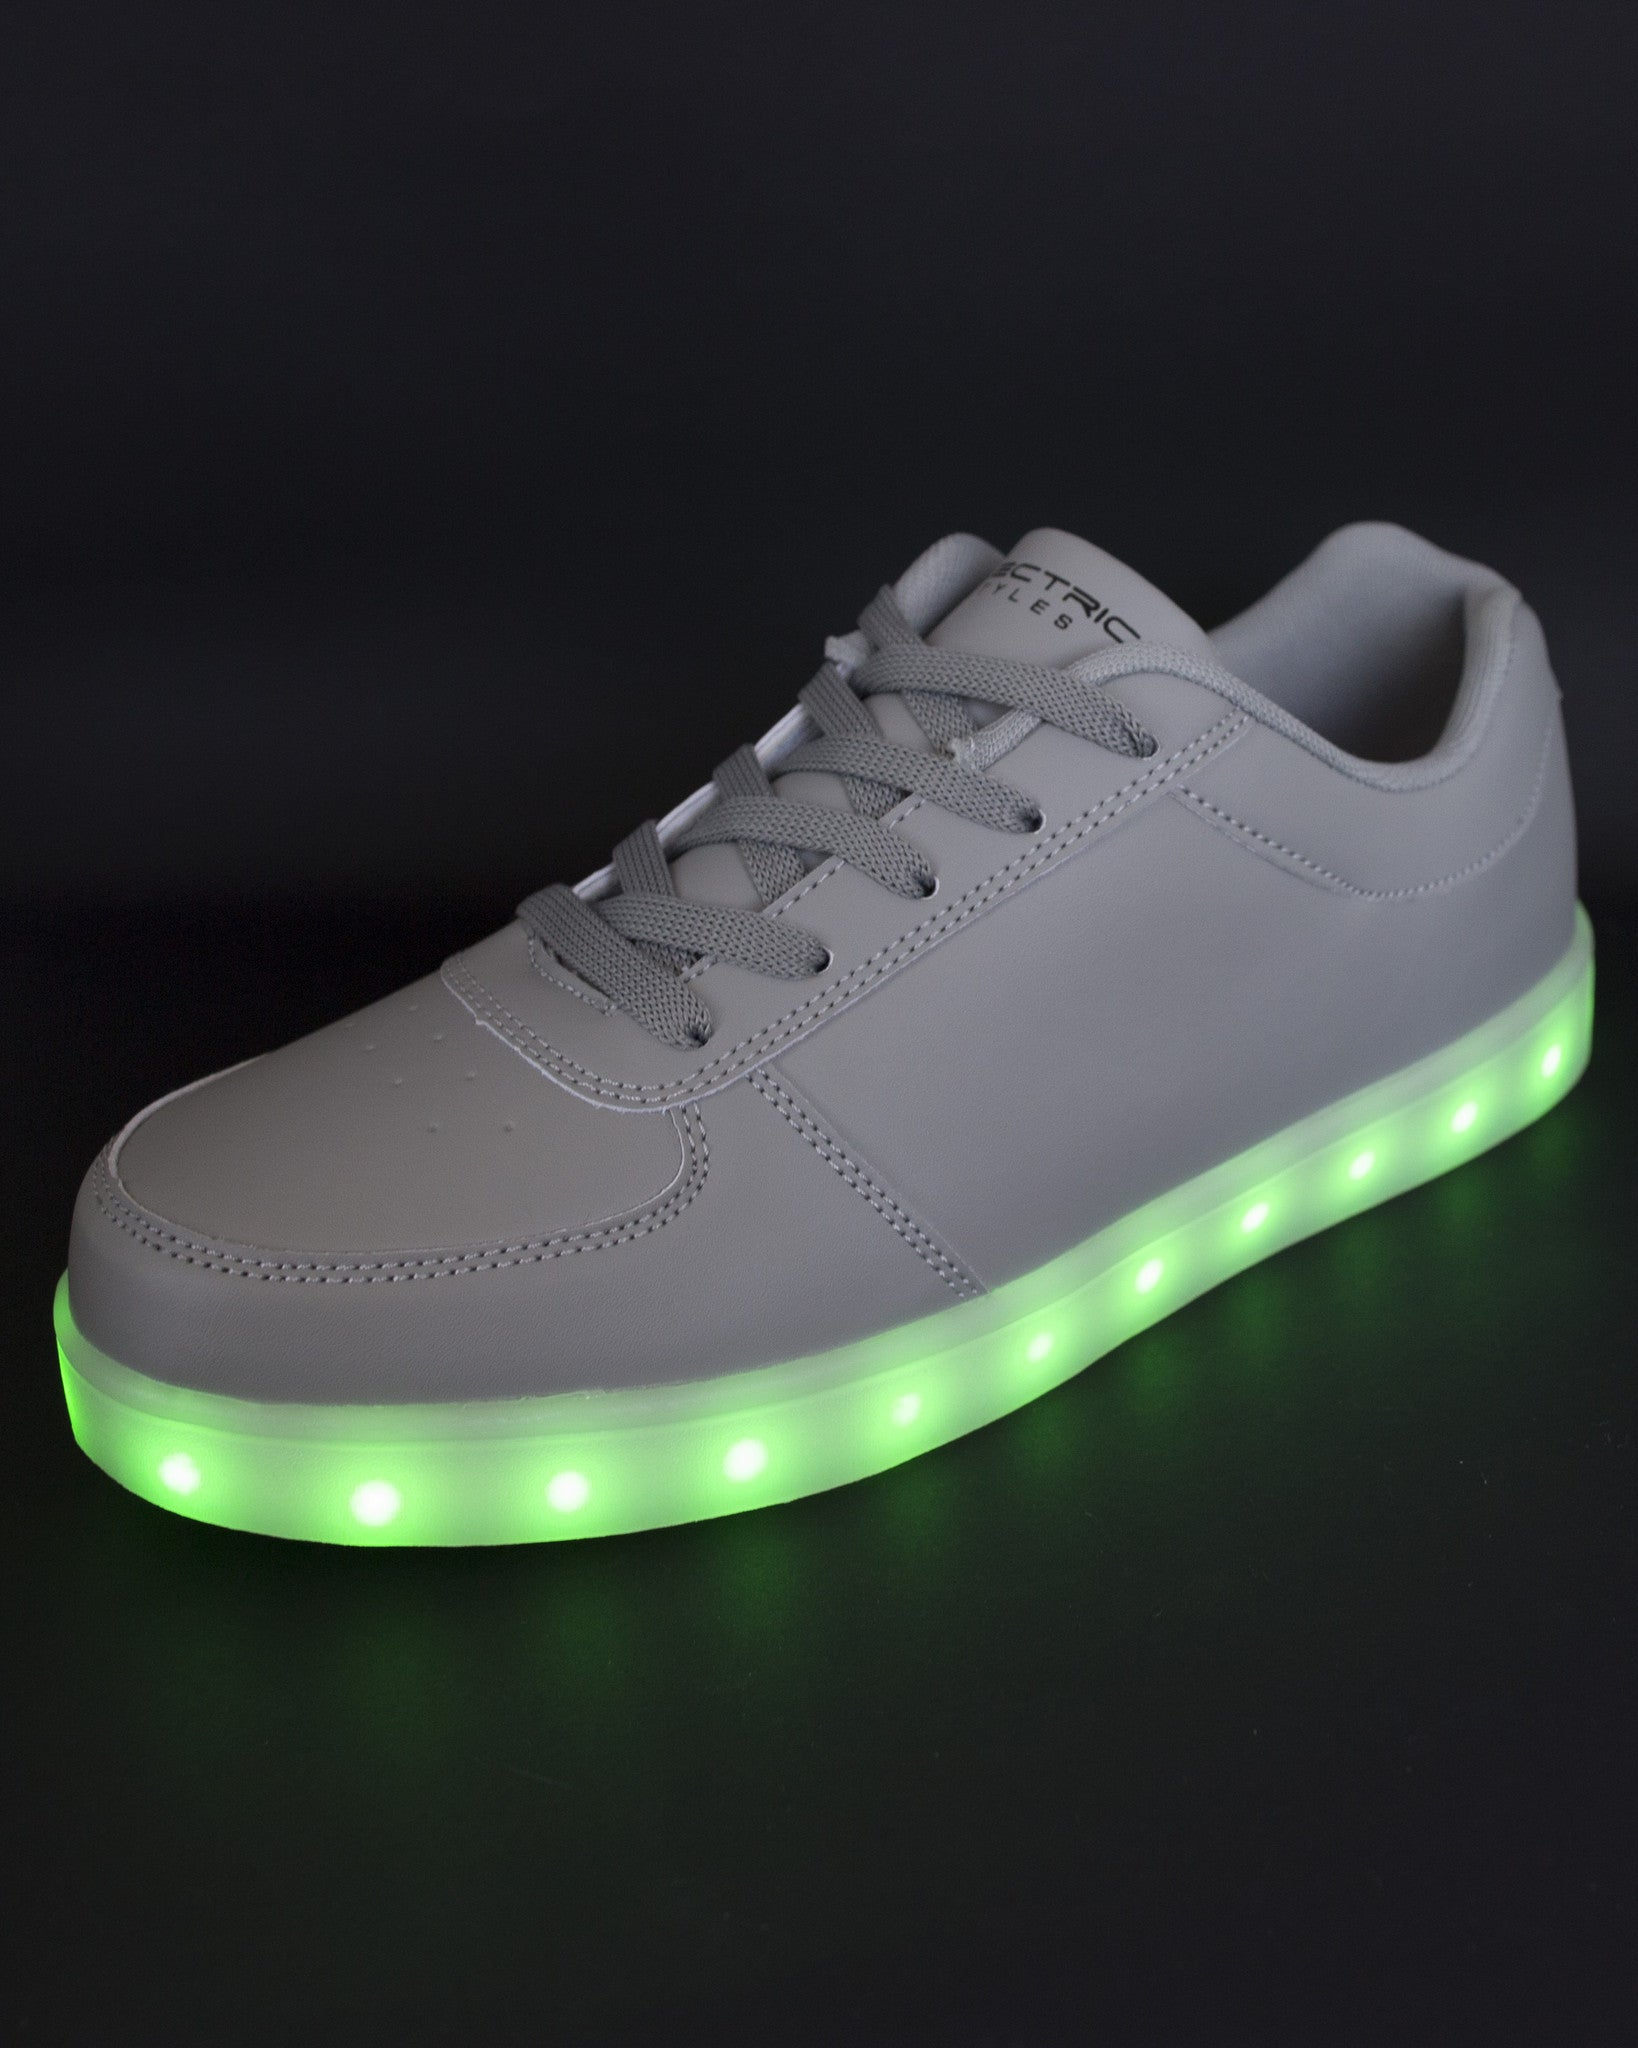 Light Up Shoes - Stone Grey - Electric Styles | World's Number 1 Light Up Shoe Store - {product_type}} -  - 8